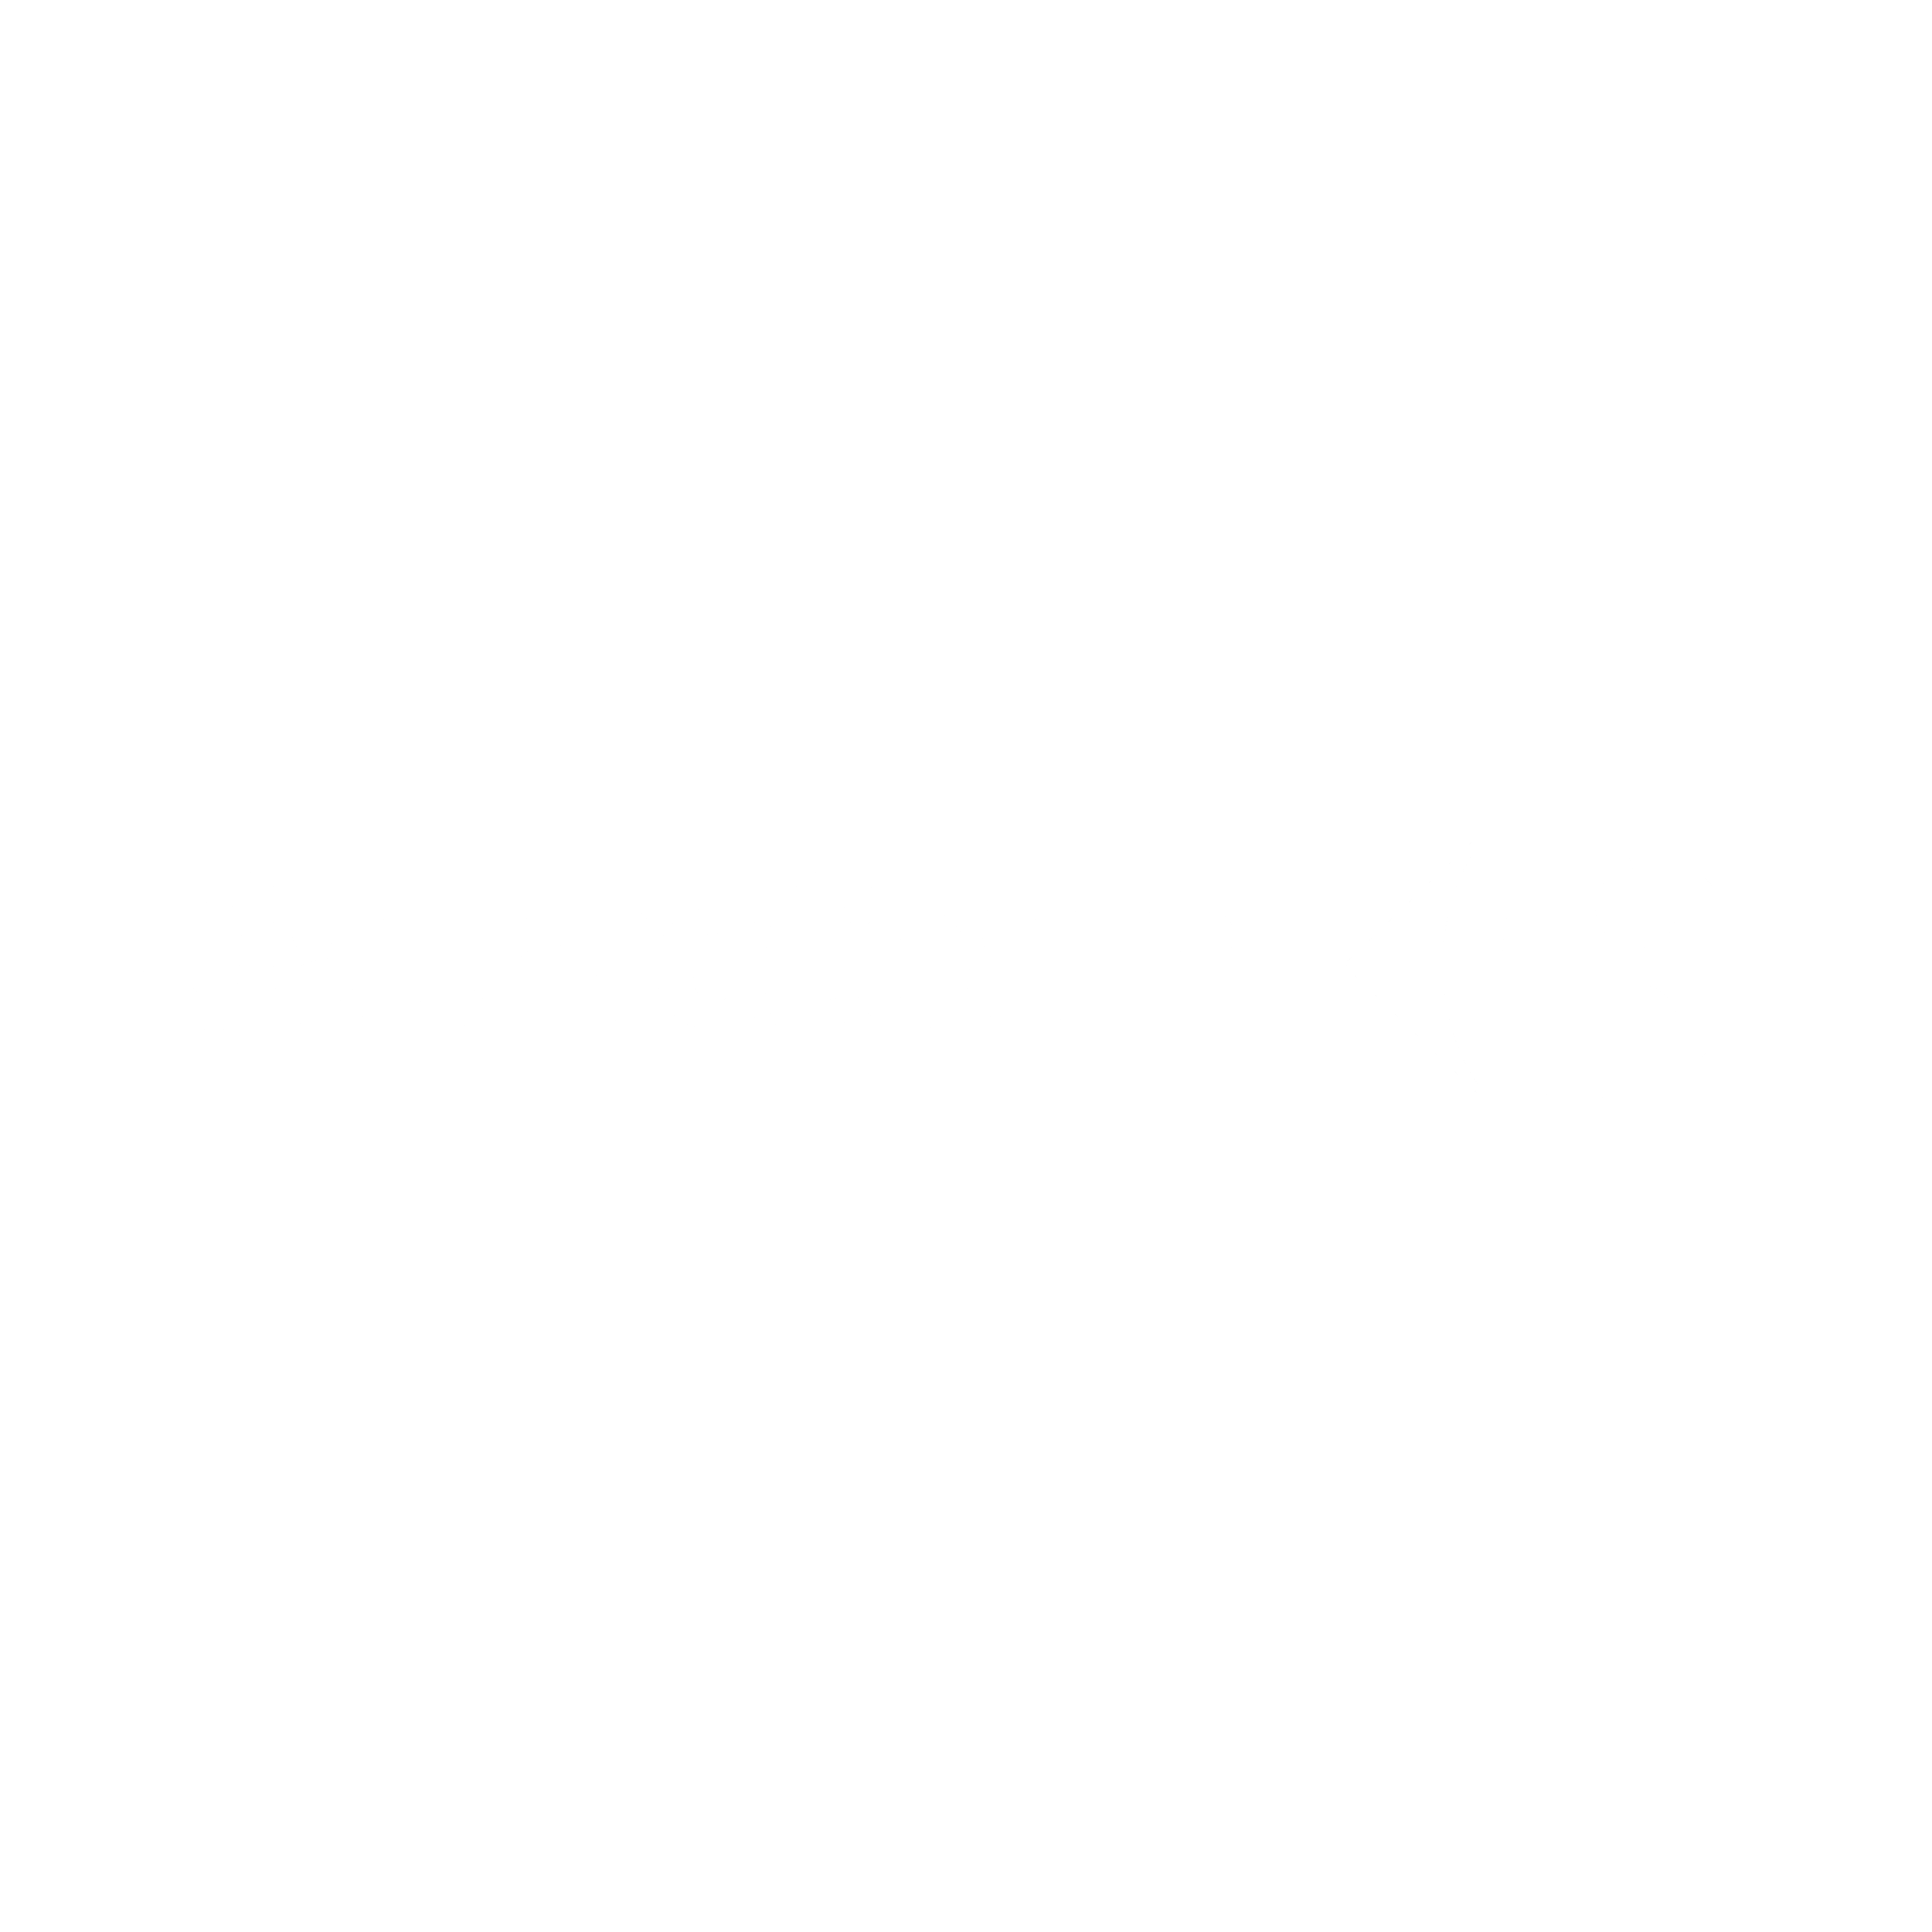 Carrefour Logo Png Transparent Svg Vector Freebie Supply